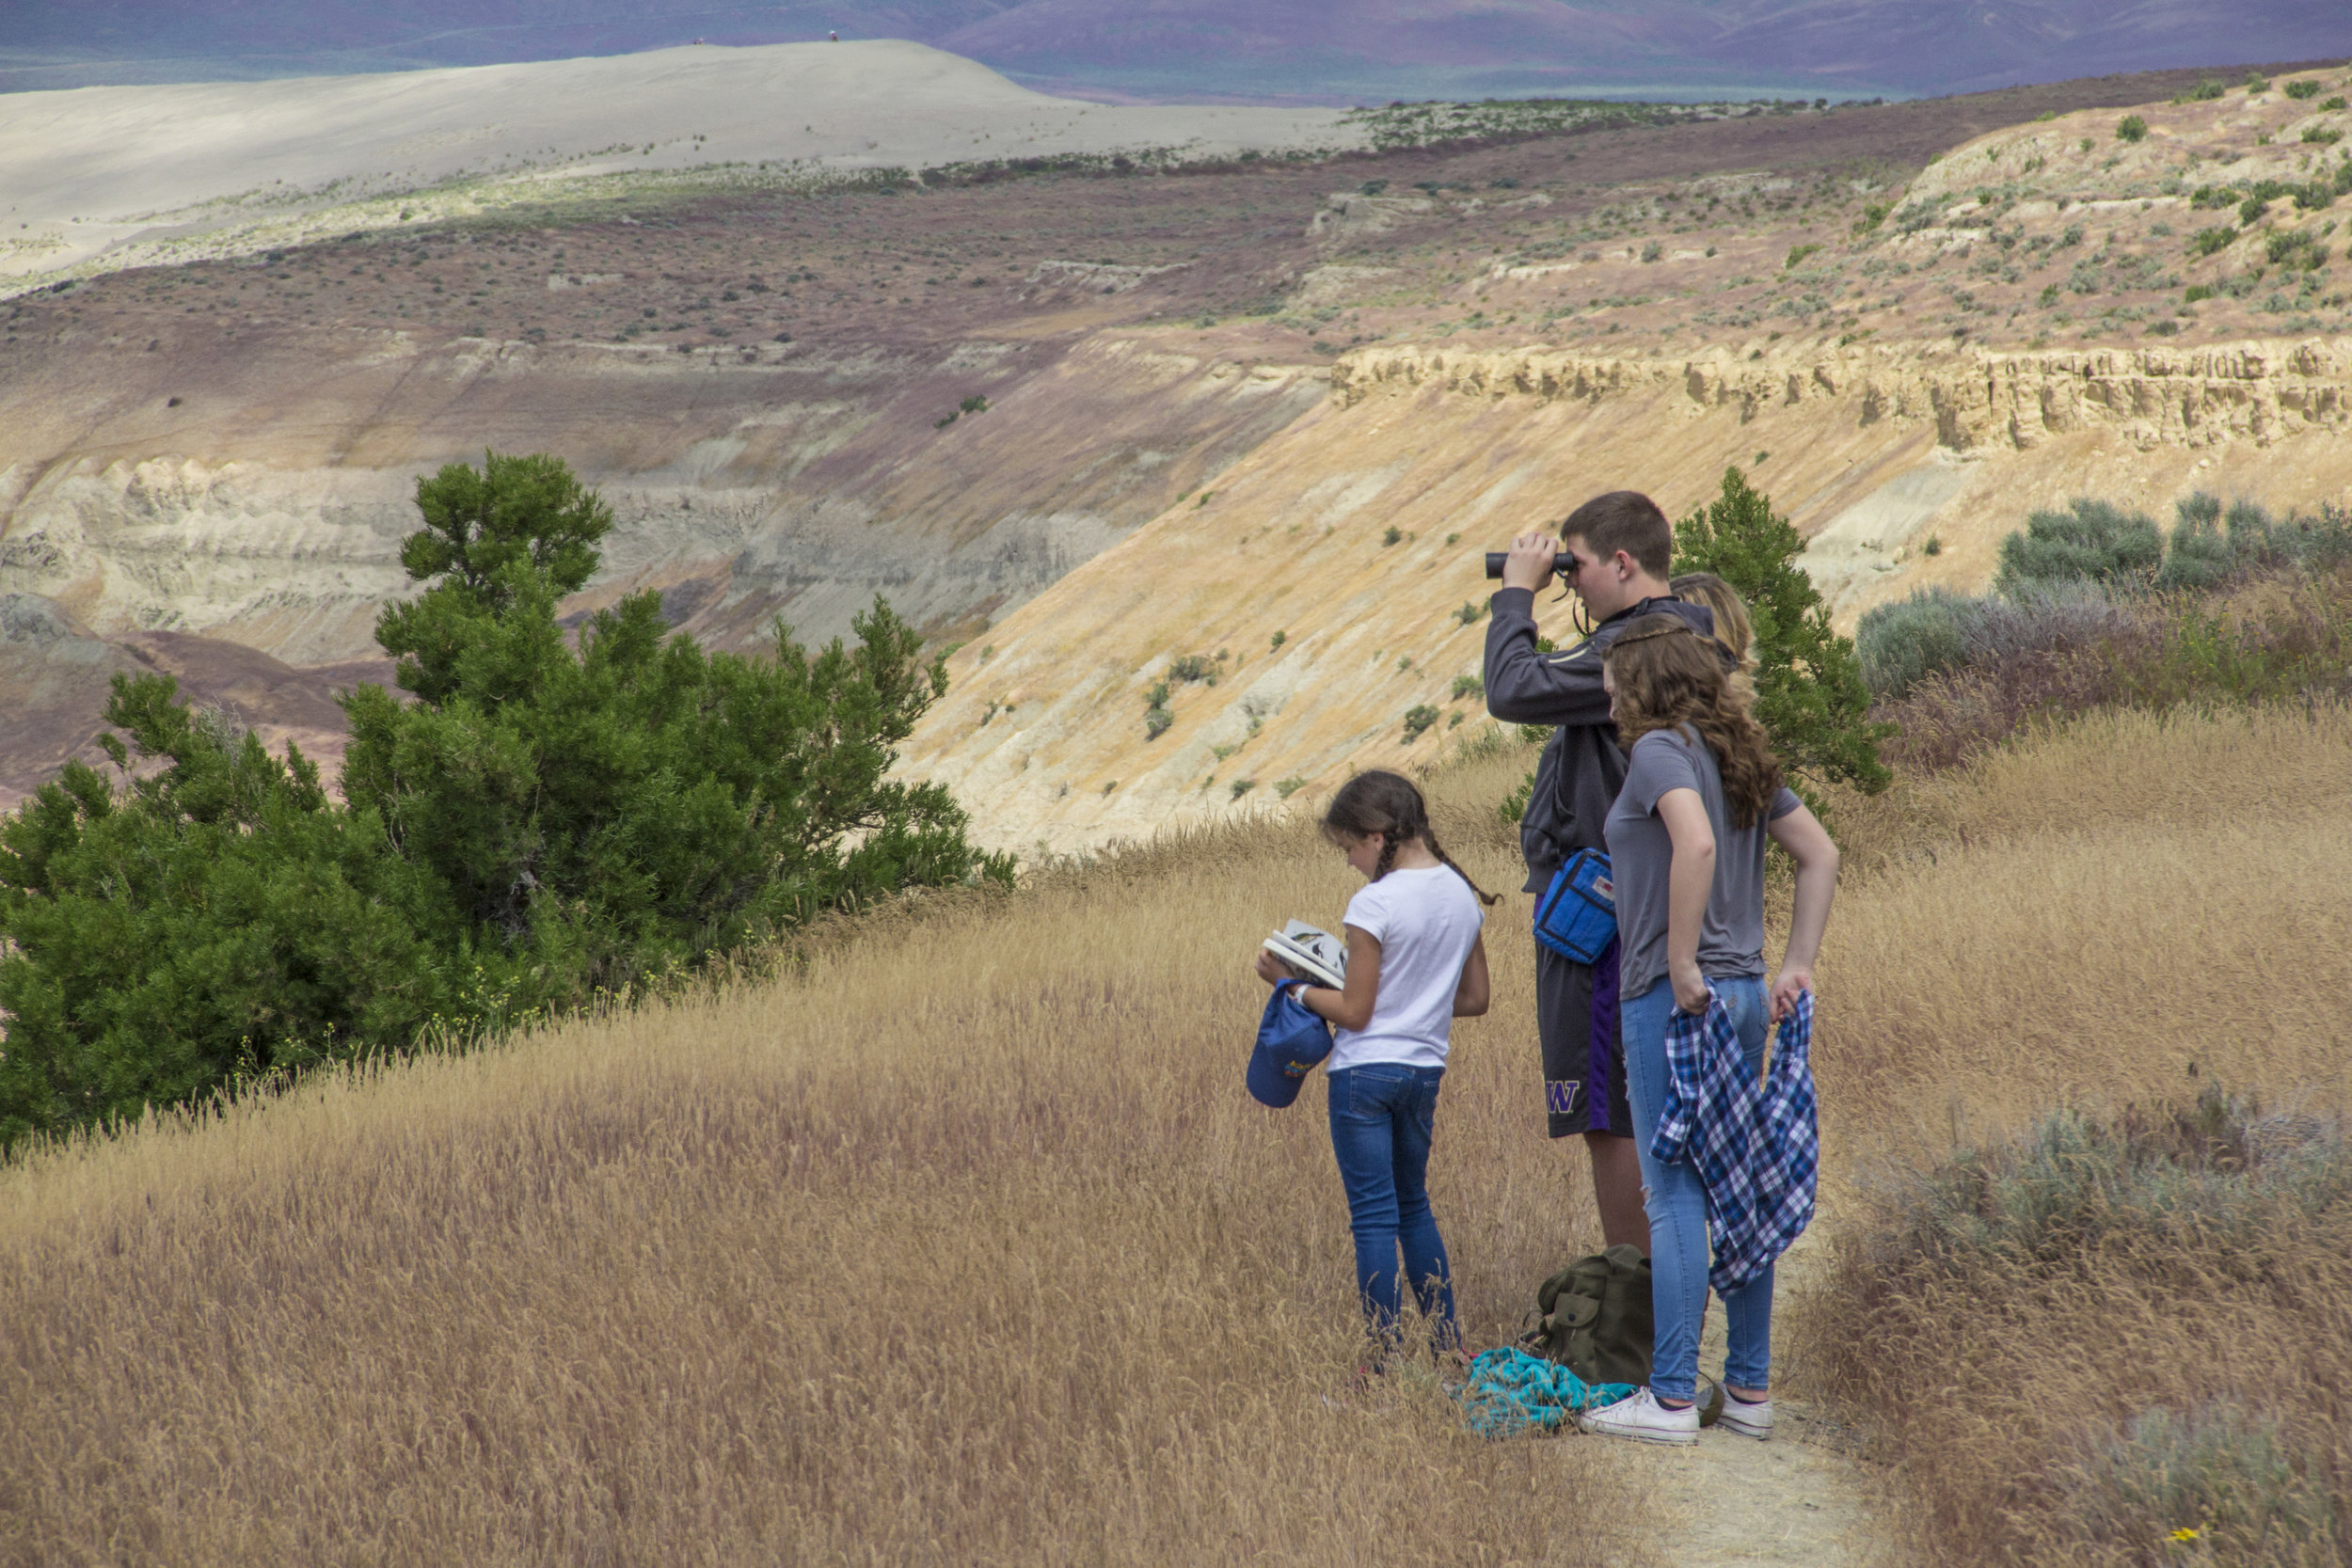 Visitors to Hanford Reach learn about the birds that make the Hanford Reach National Monument their home. Photo by Joel Rogers.